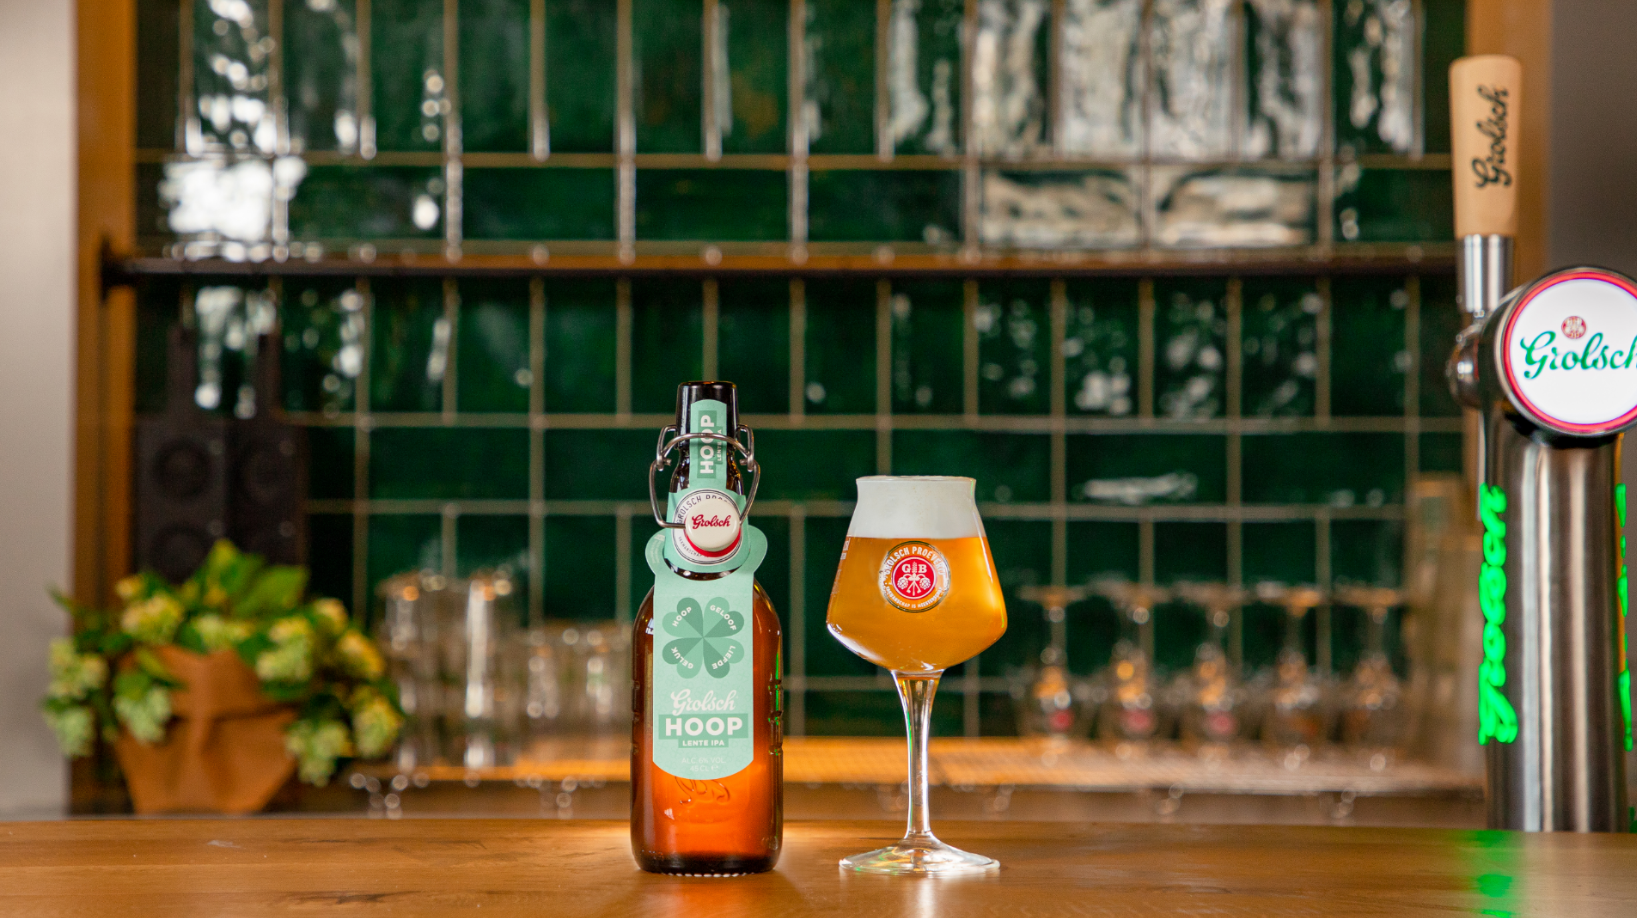 Grolsch offers optimism with new craft beer Hope